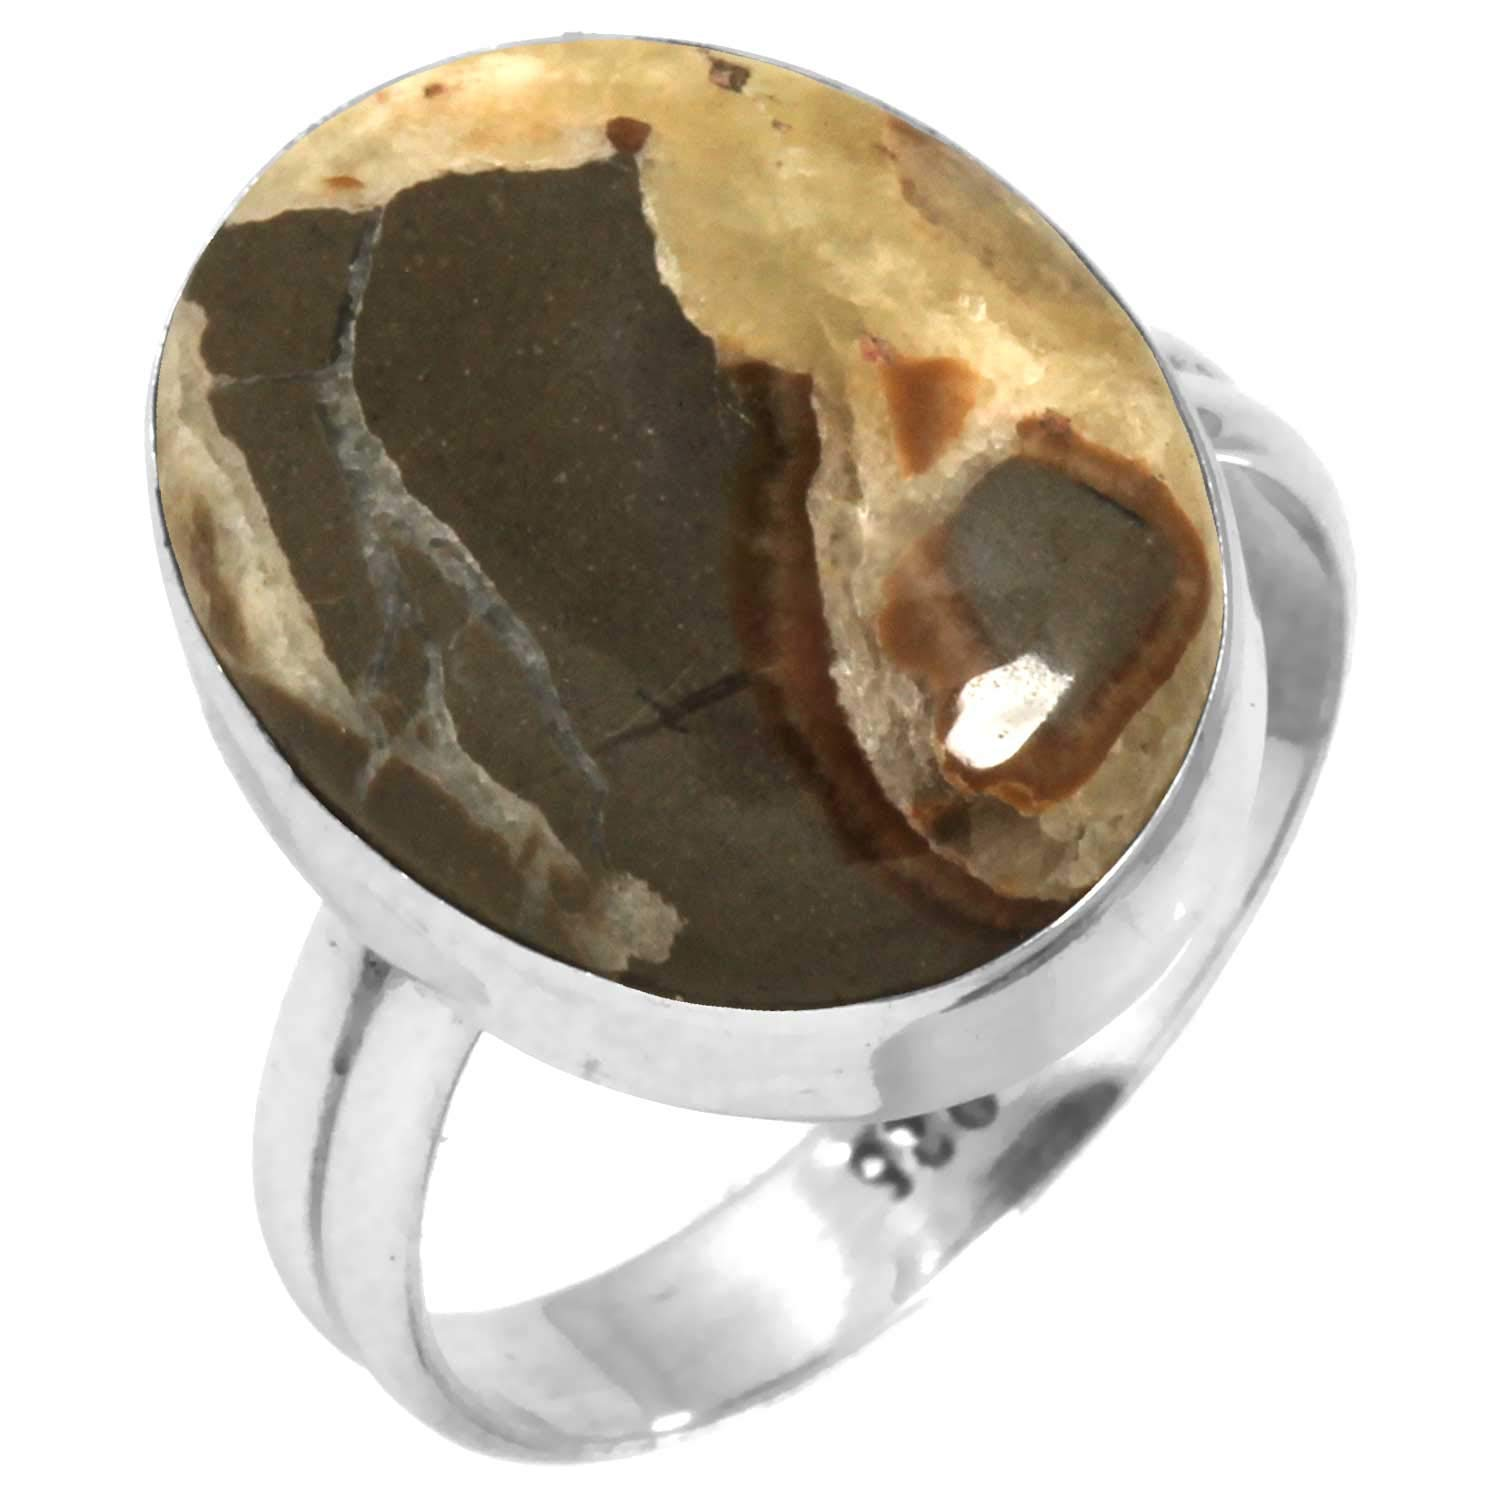 Solid 925 Sterling Silver Modern Jewelry Natural Yellow Septarian Gemstone Ring Size 9